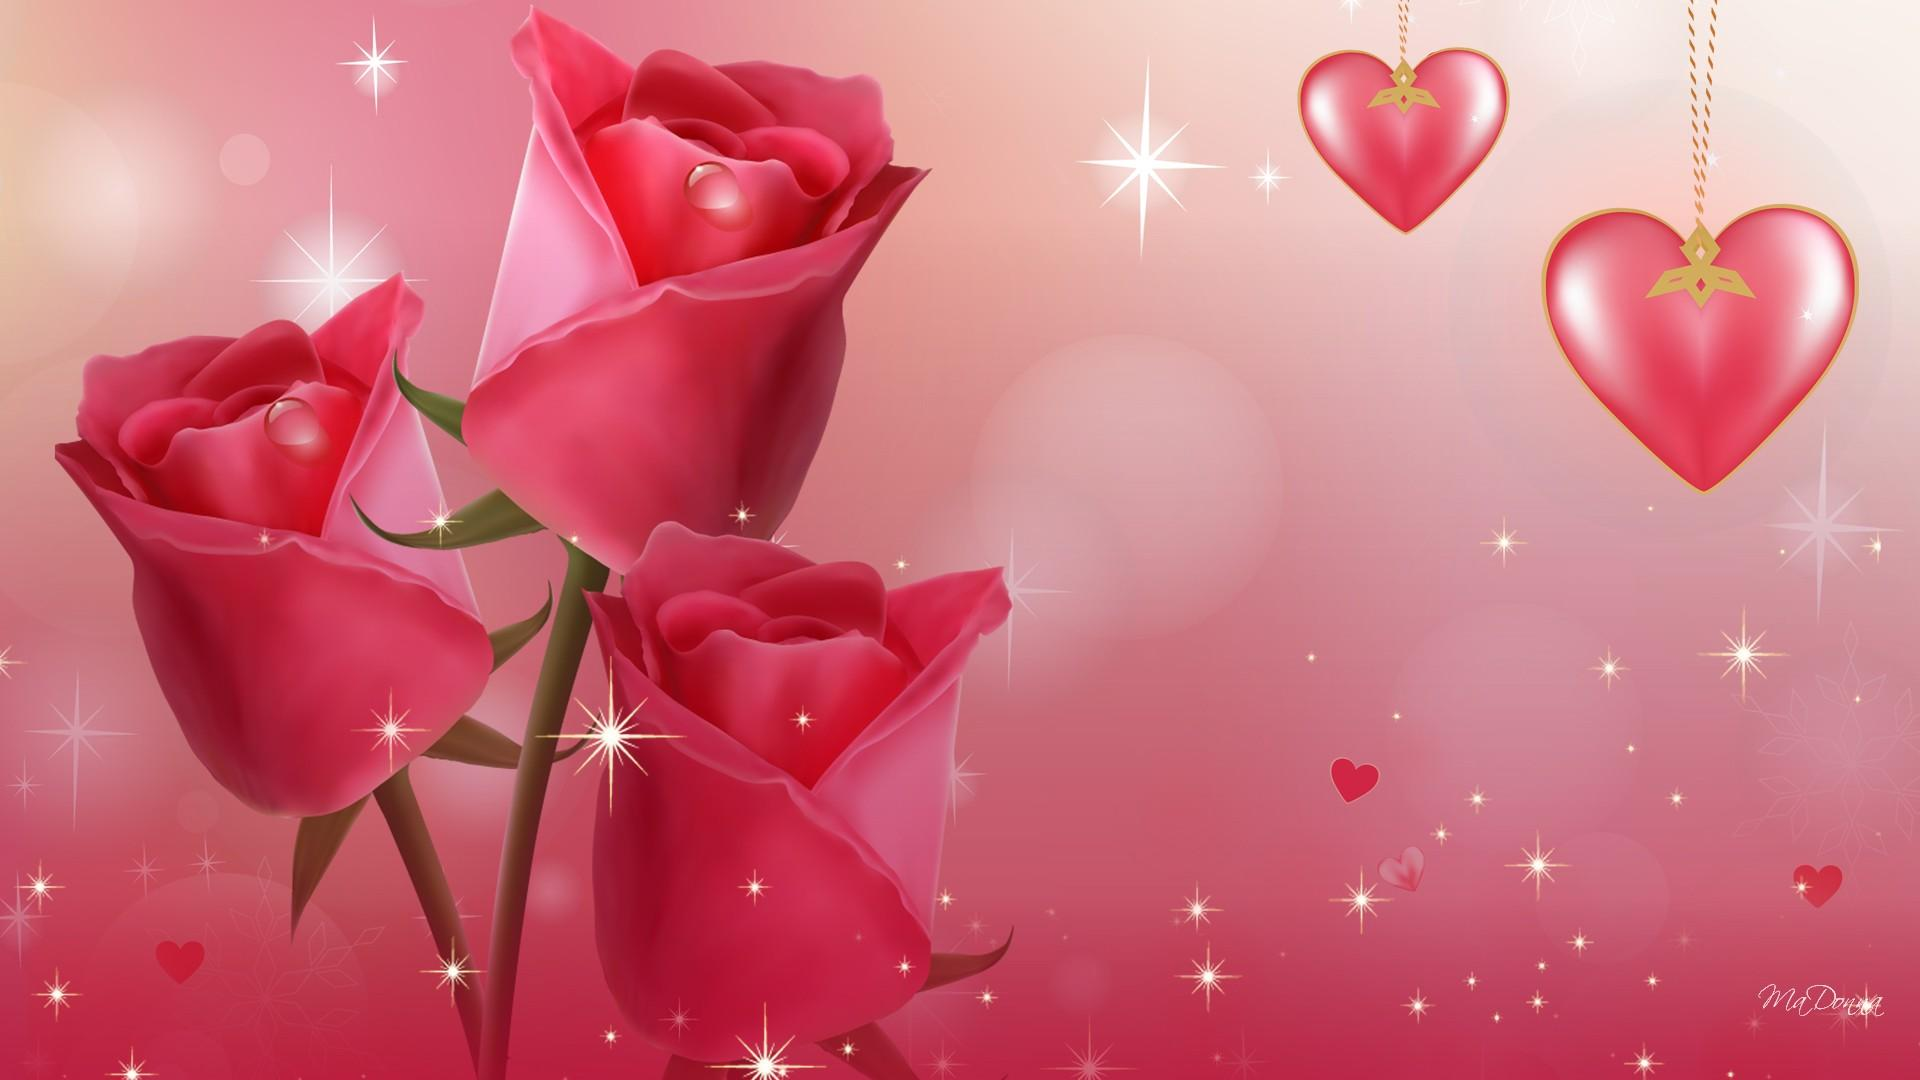 Beautiful Wallpaper I Love You : Beautiful Love Wallpaper HD - WallpaperSafari